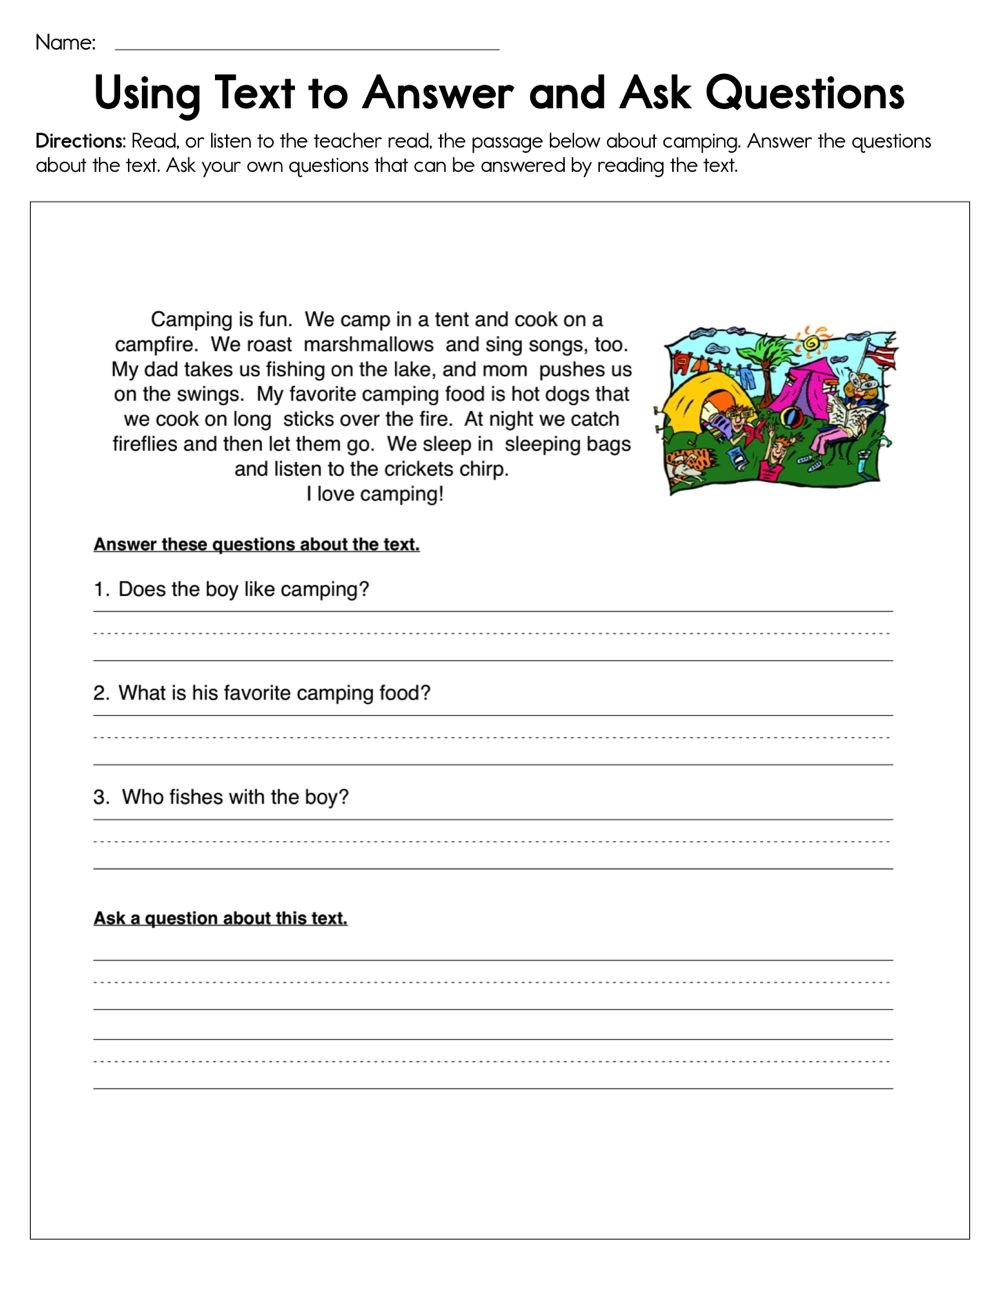 Using Text To Answer And Ask Questions Worksheet